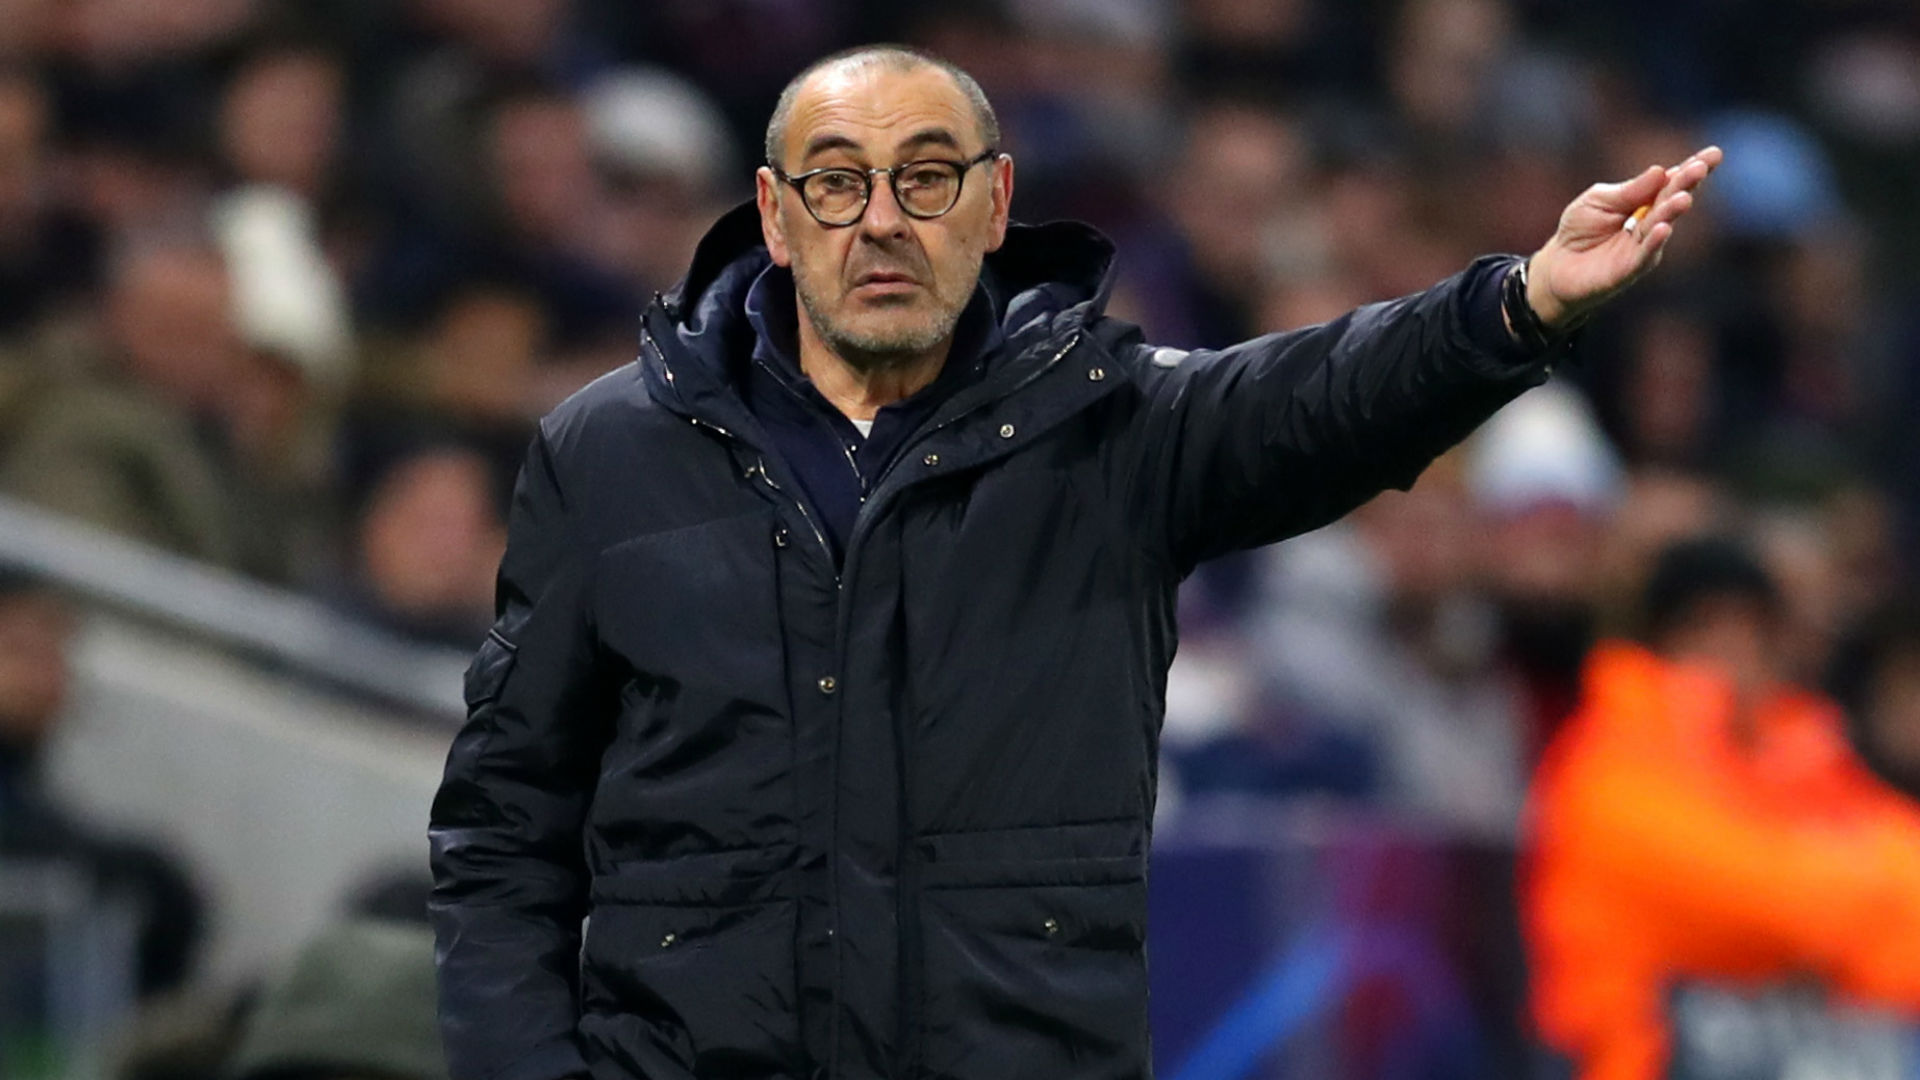 Sarri: Why am I criticised? I'm probably an asshole to some people!